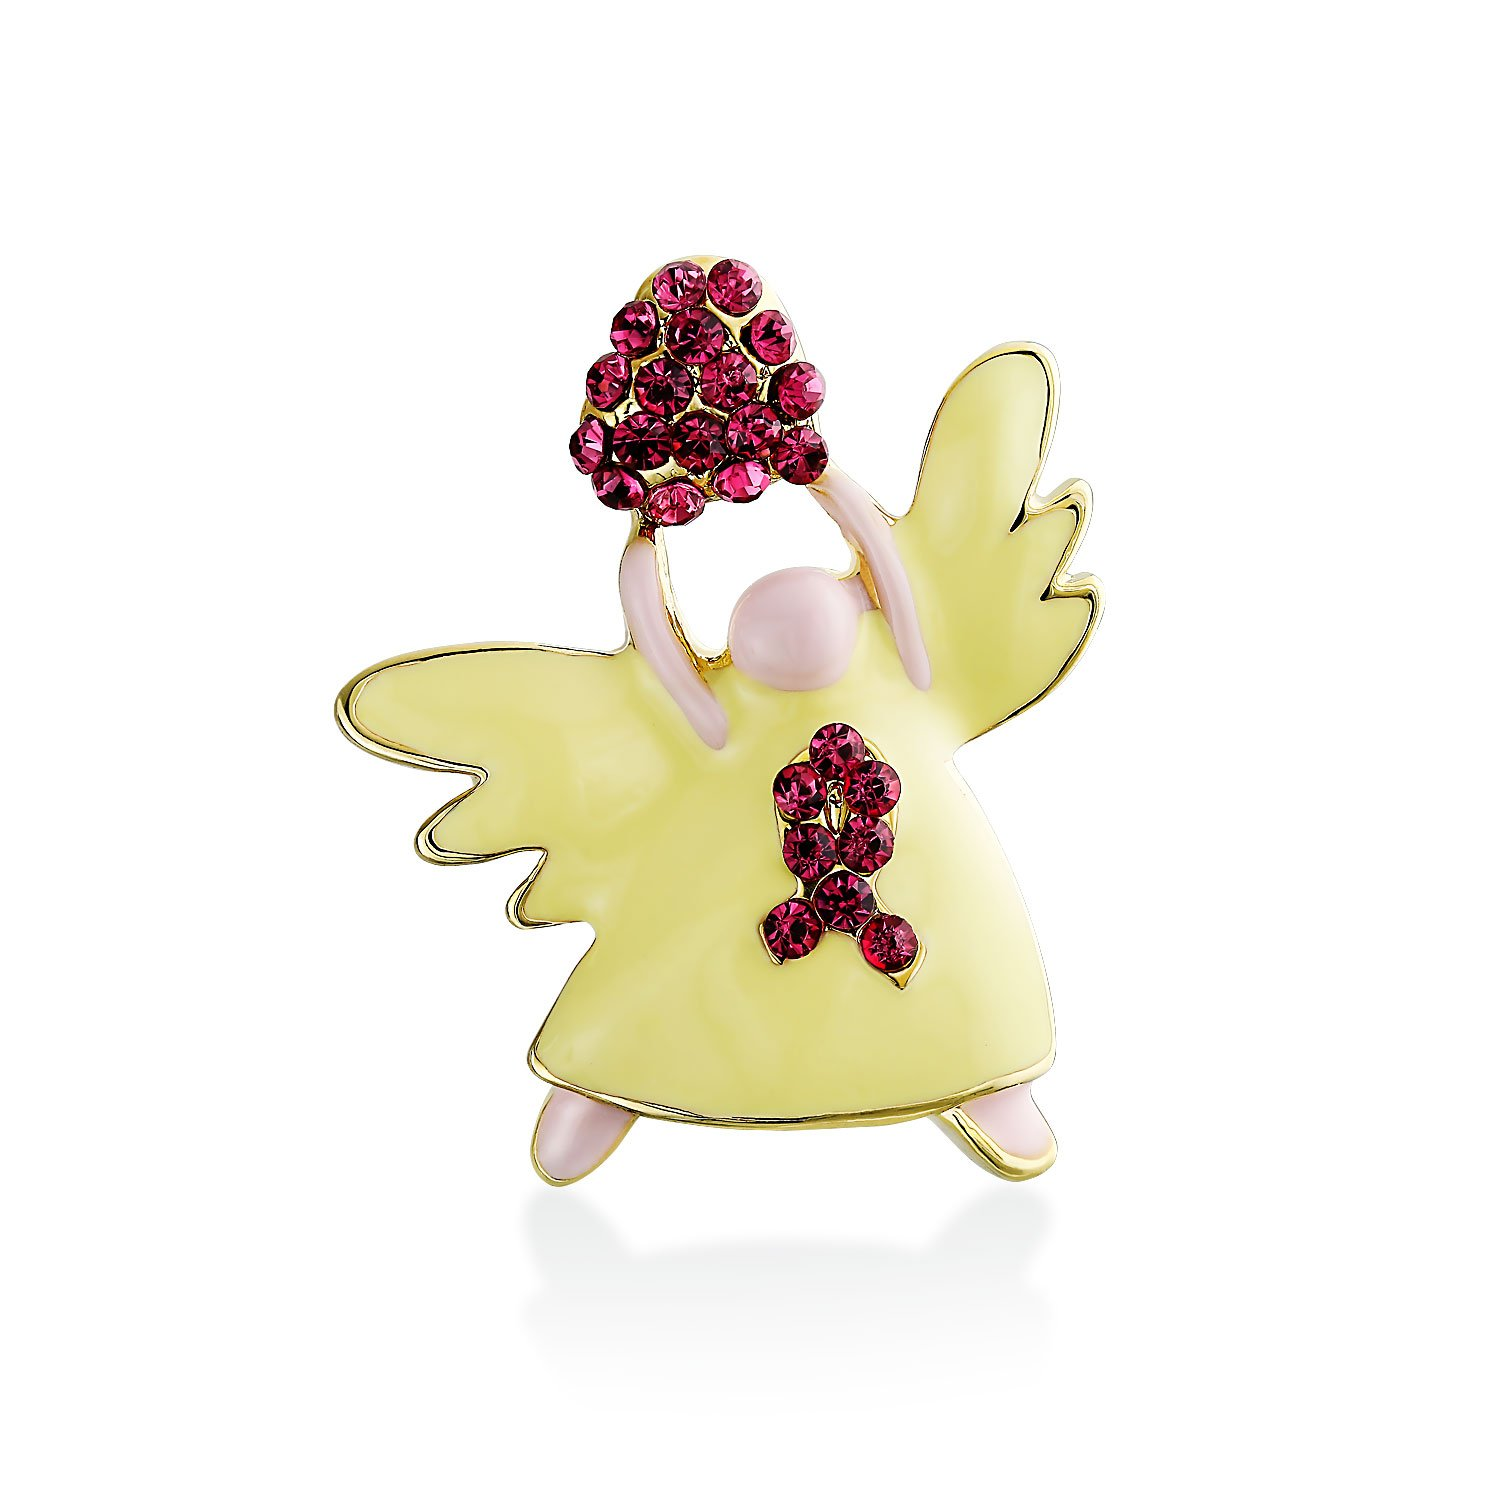 Guardian Angel Brooch Pin Breast Cancer Ribbon Heart Accent Red Crystal Yellow Glass Gold Plated Brass Bling Jewelry CJ-W3459P-BJ